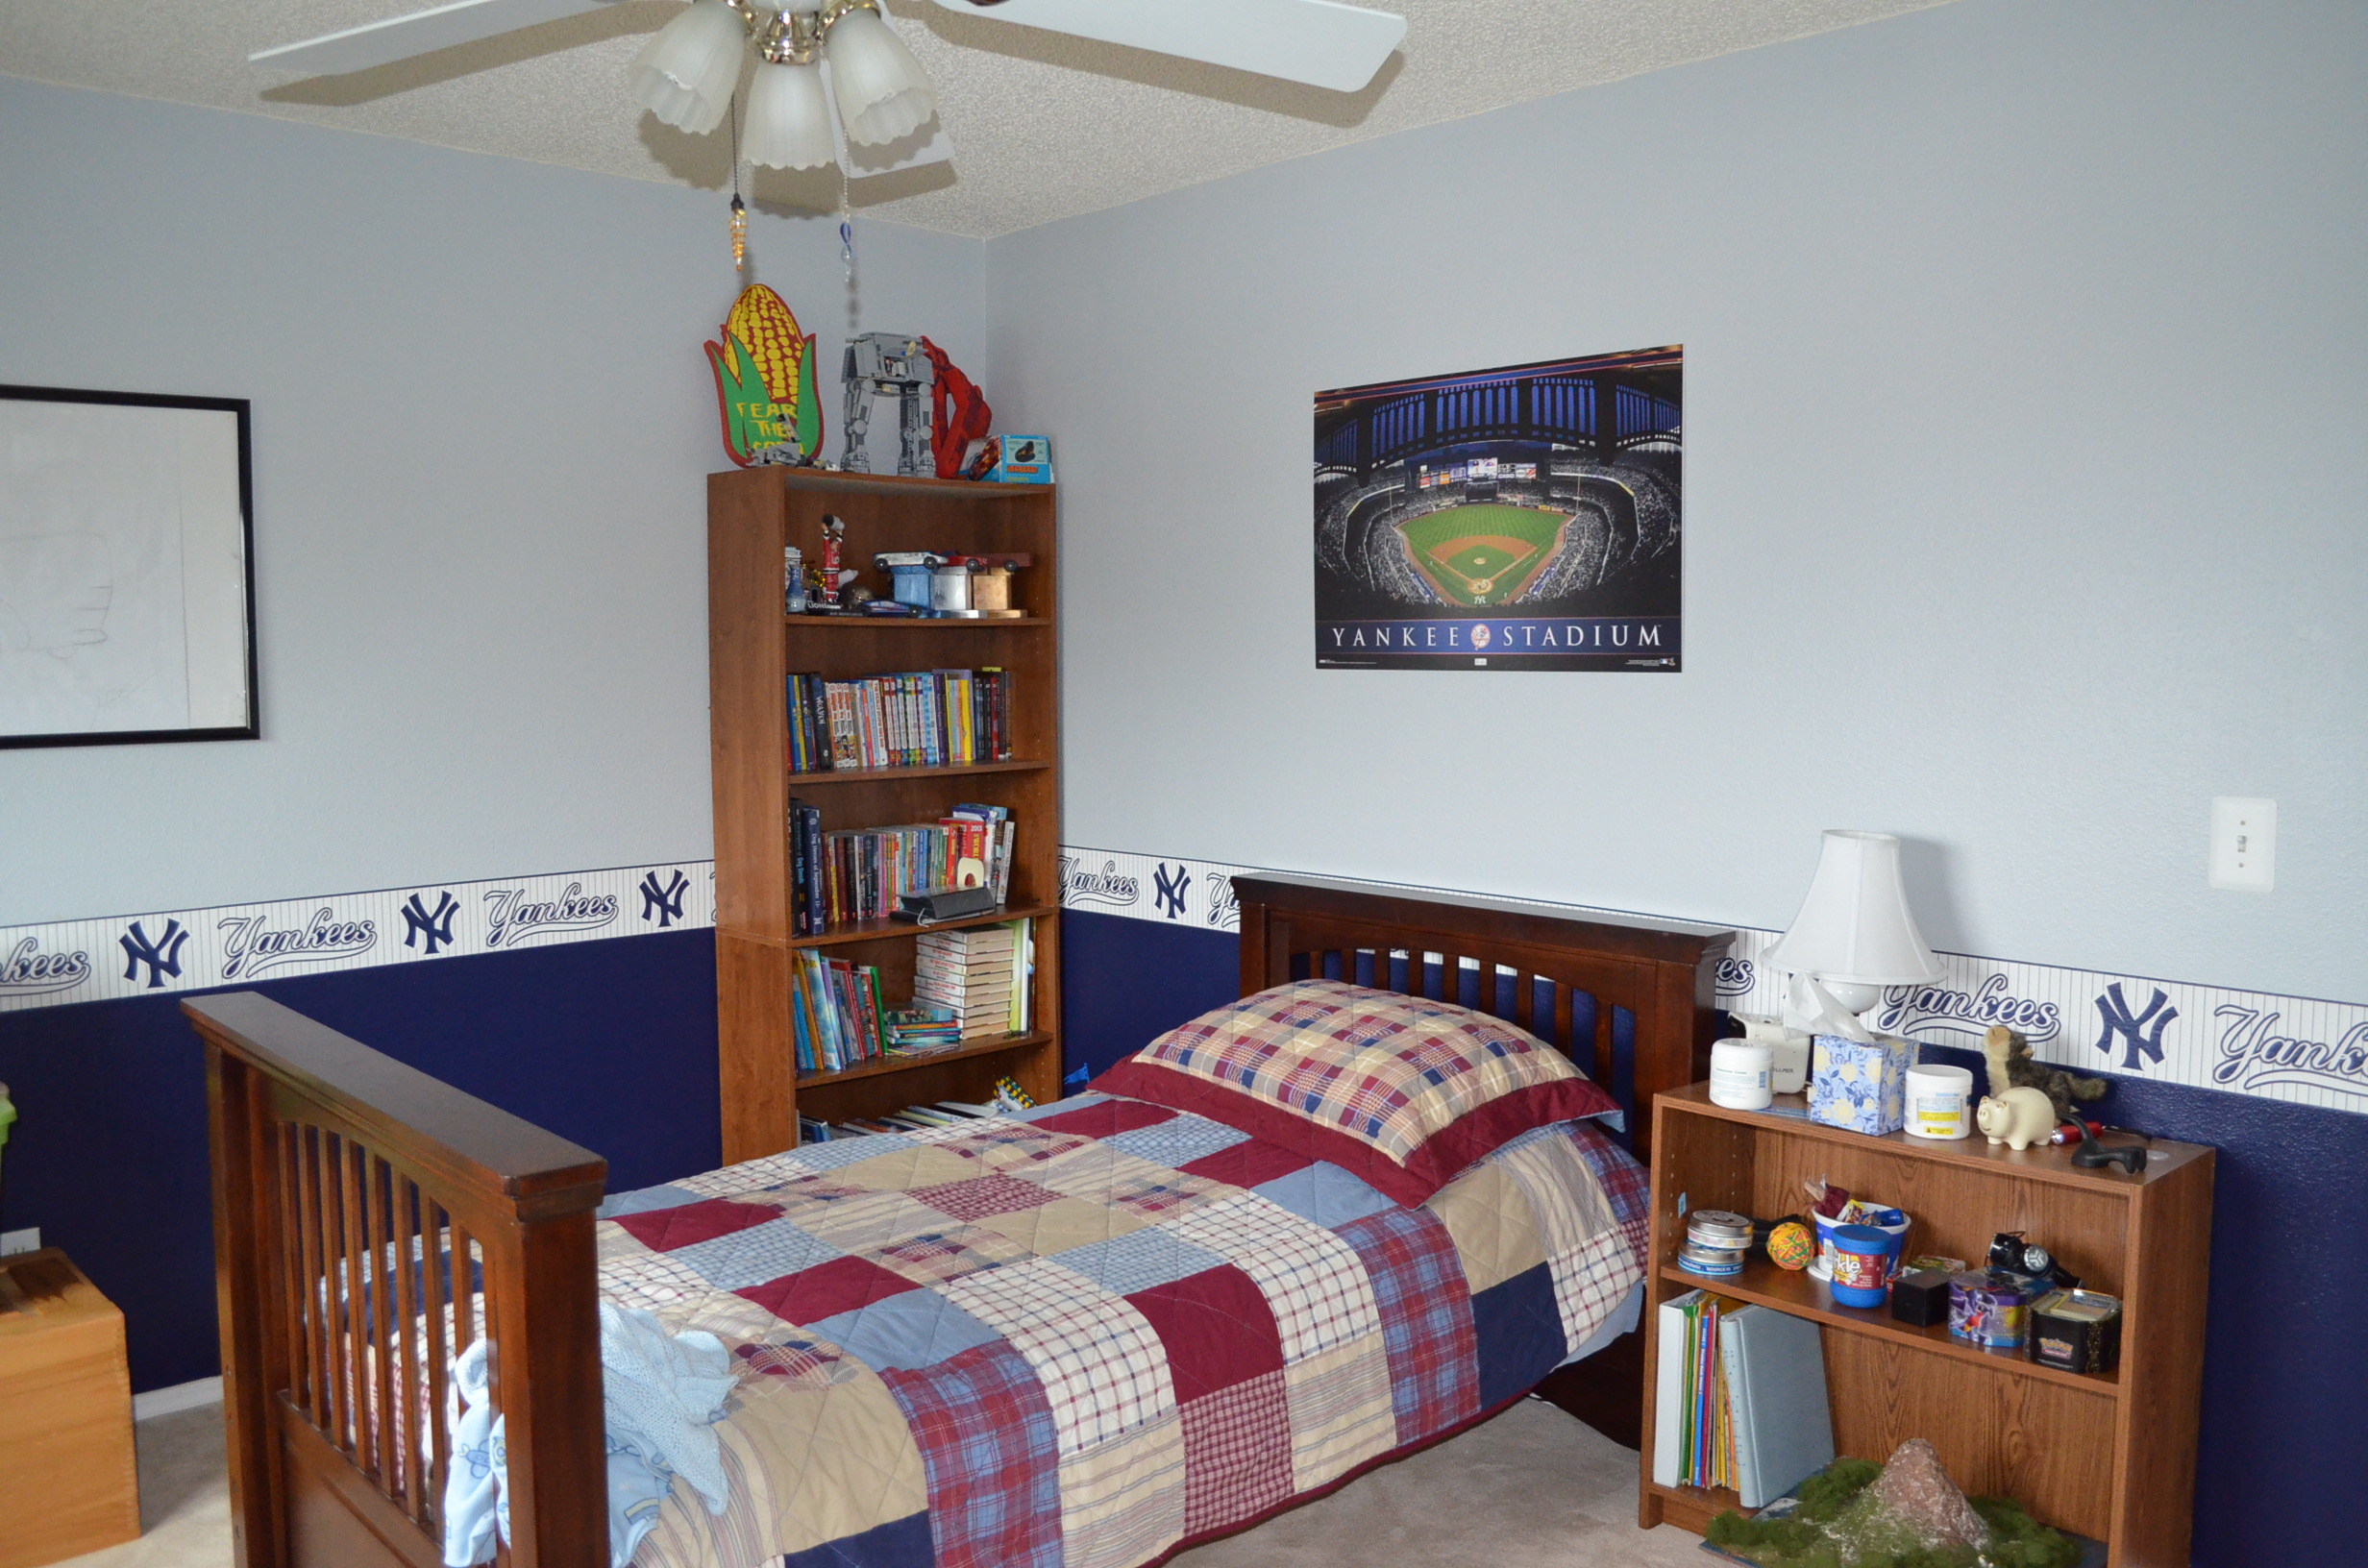 Who needs a Fathead  For the cost of a single Fathead we were able toBoys  Baseball Bedrooms on a Budget   Ground Control to Major Mom. Baseball Bedroom. Home Design Ideas